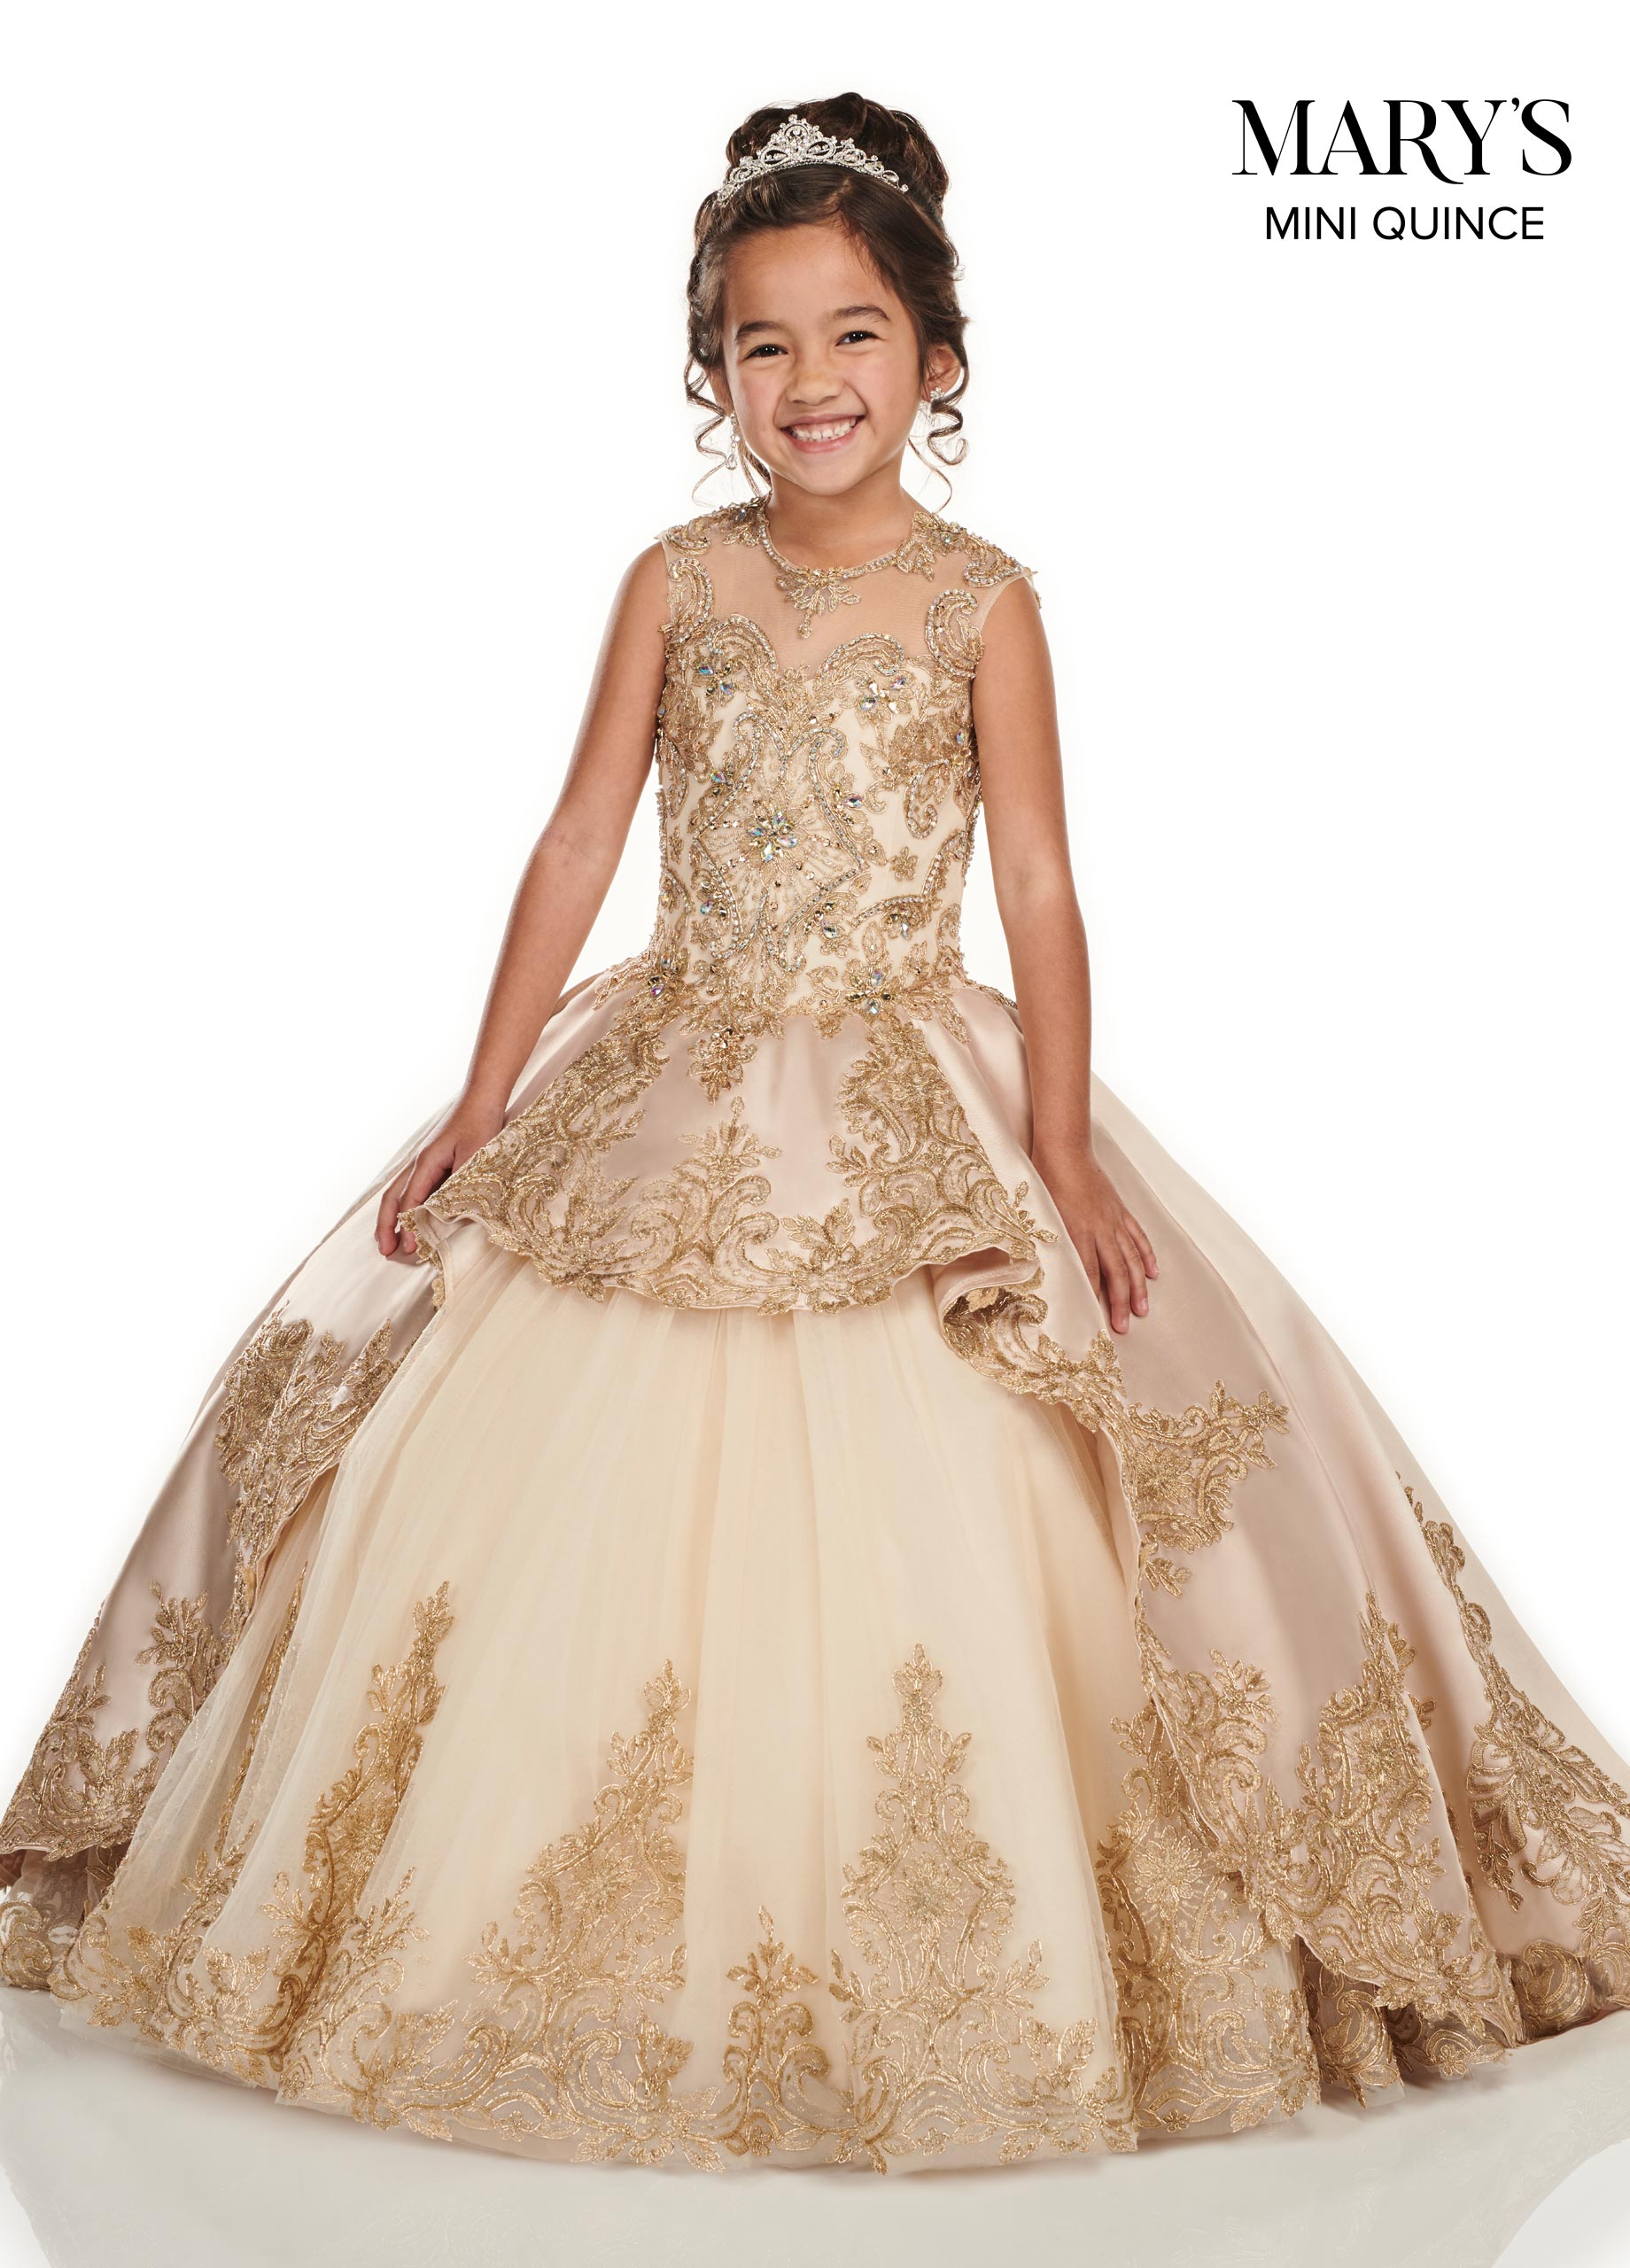 Little Quince Dresses | Mini Quince | Style - MQ4014